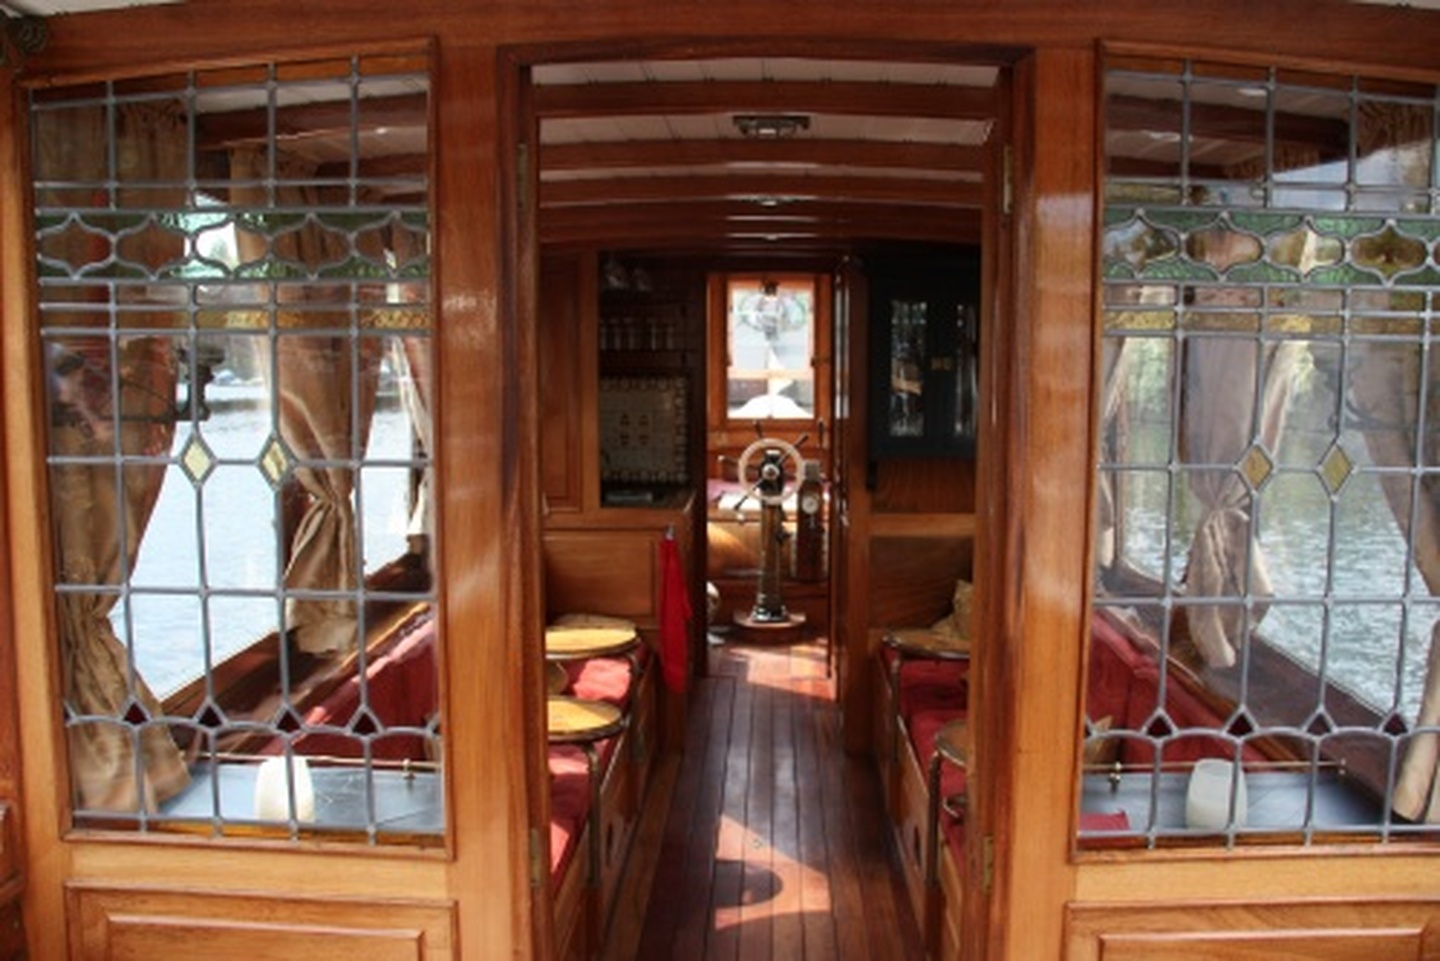 Amsterdam conference rooms Boat 't Smidtje - Fairboat de Liefde image 1